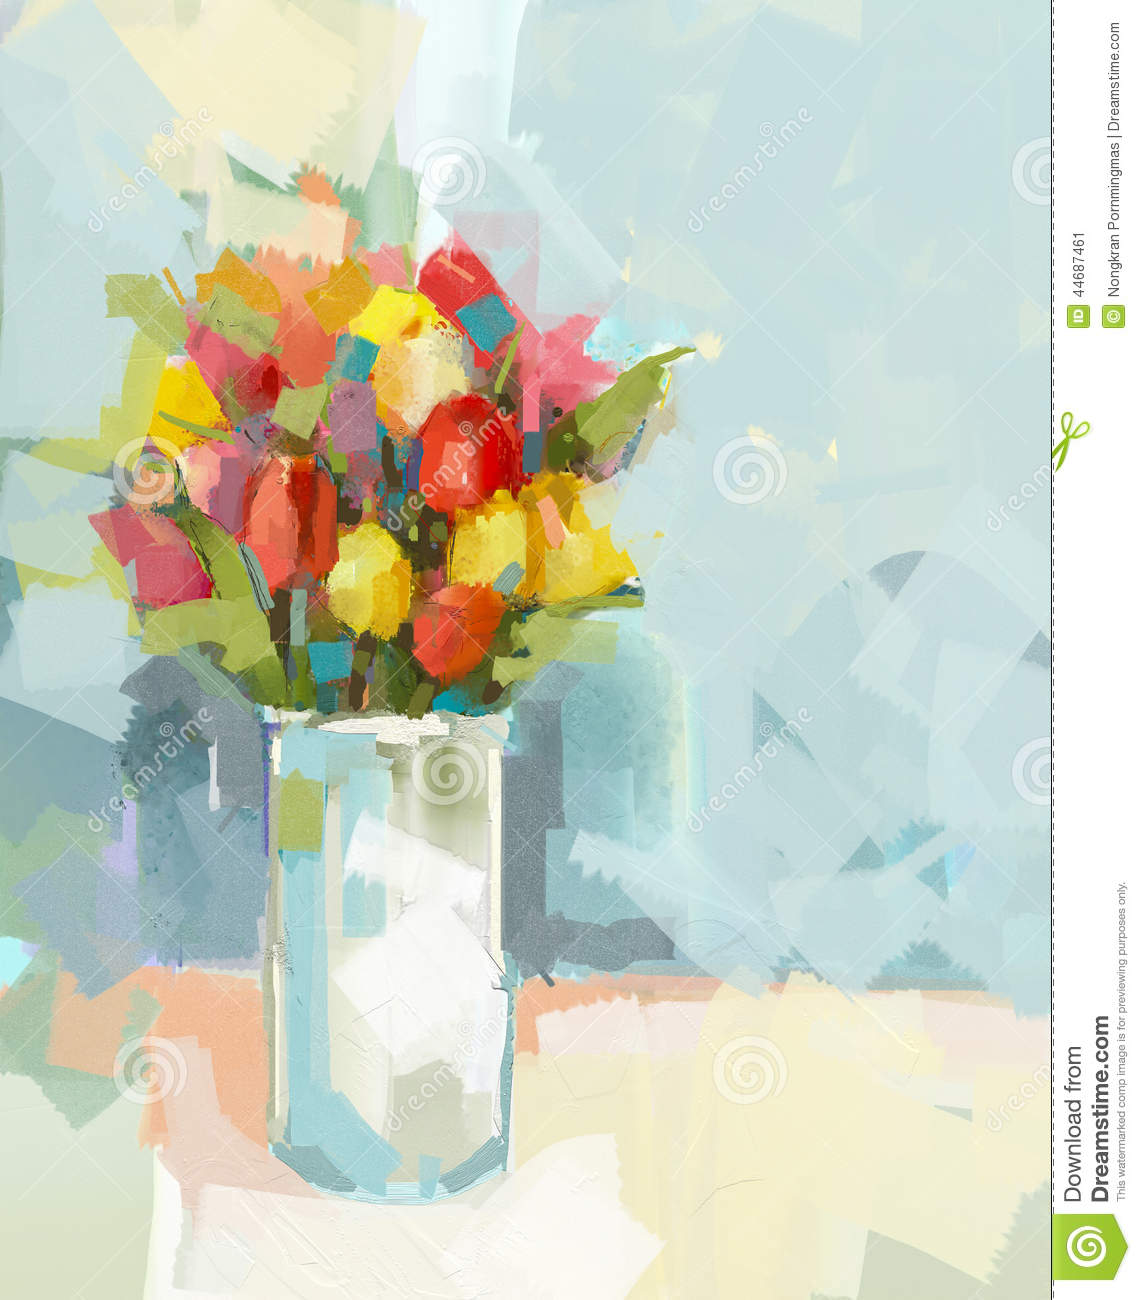 Abstract Still Life Bouquet Of Flowers Oil Painting Stock